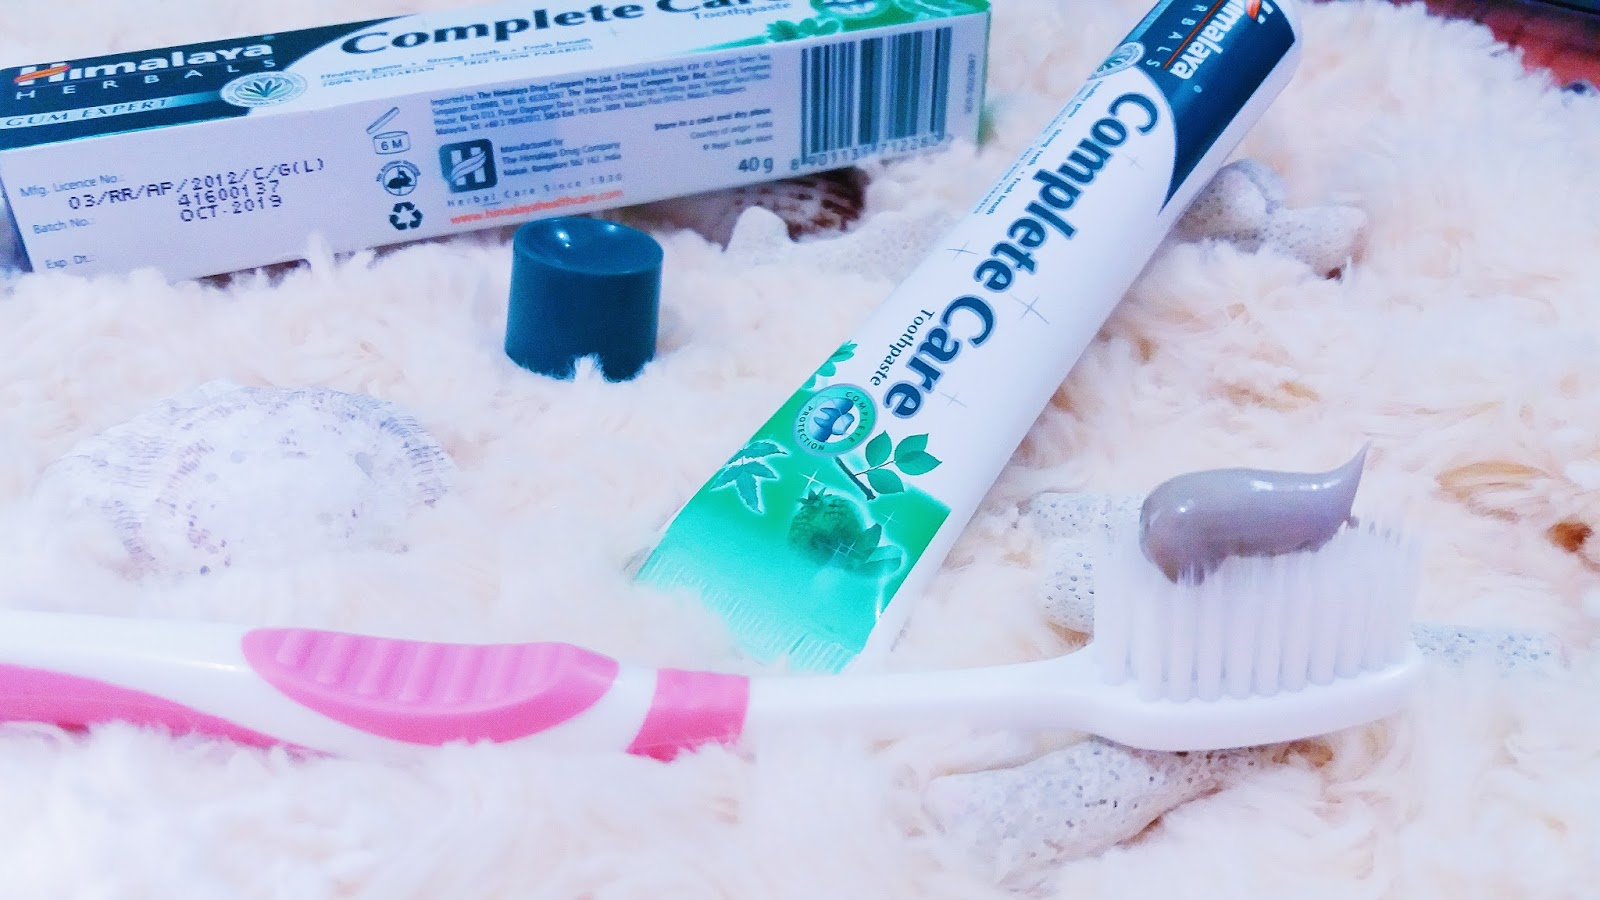 HIMALAYA HERBAL COMPLETE CARE WHITE REVIEW